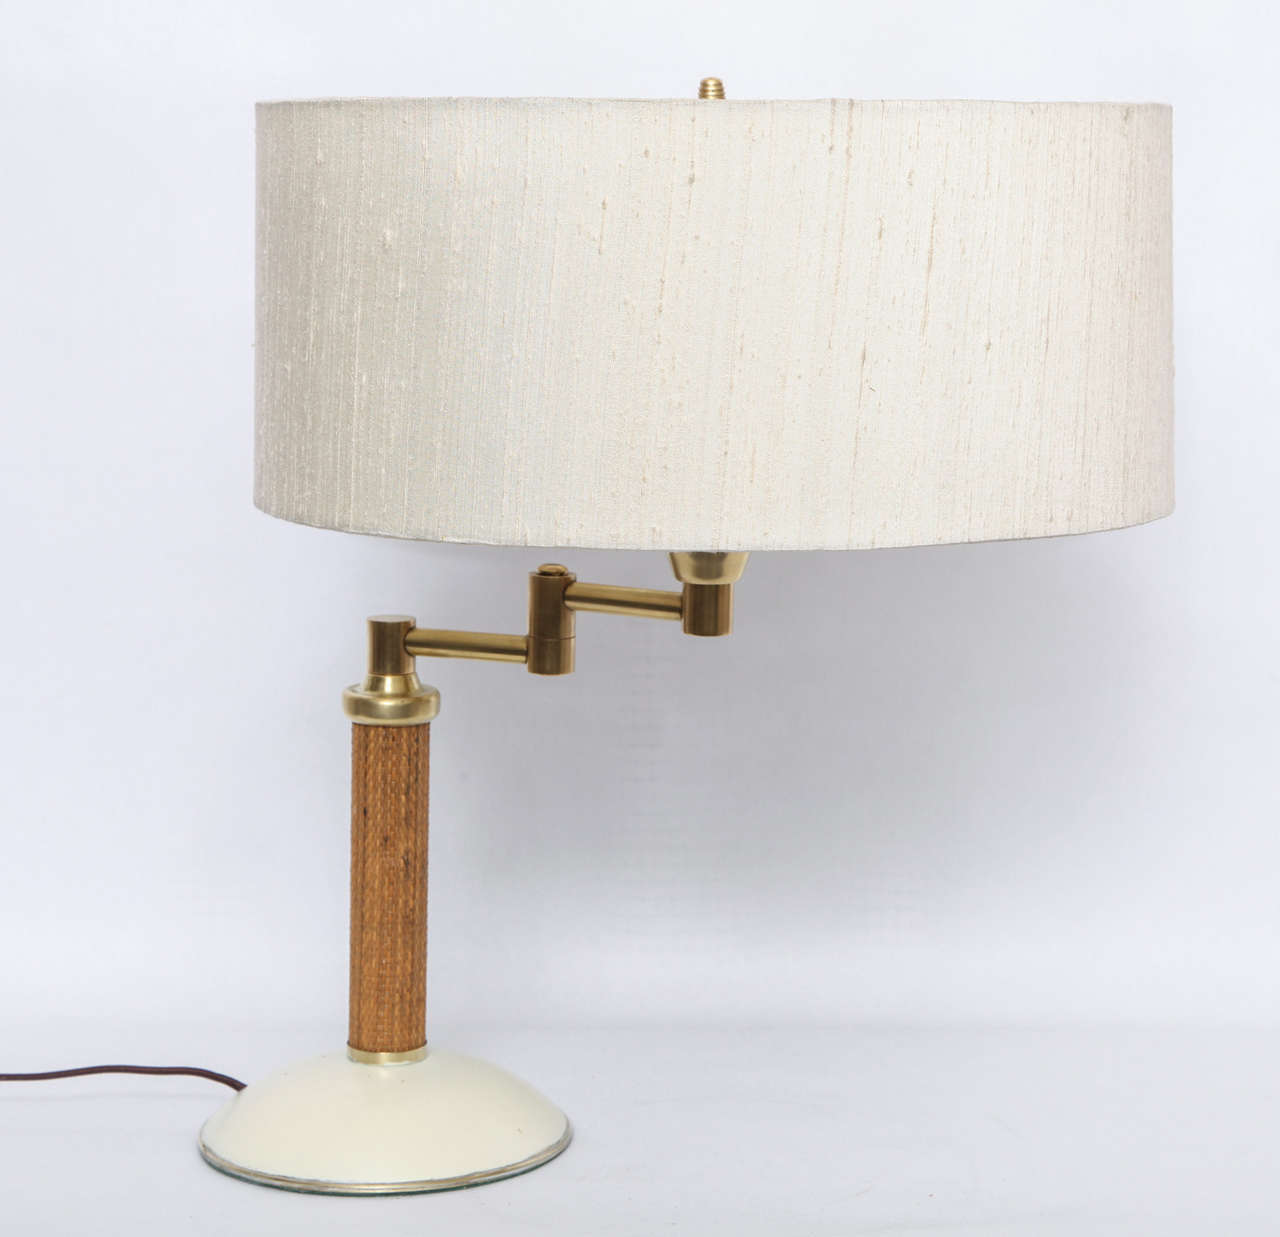 1930s American Modernist Articulated Table Lamp Attributed to Kurt Versen 3